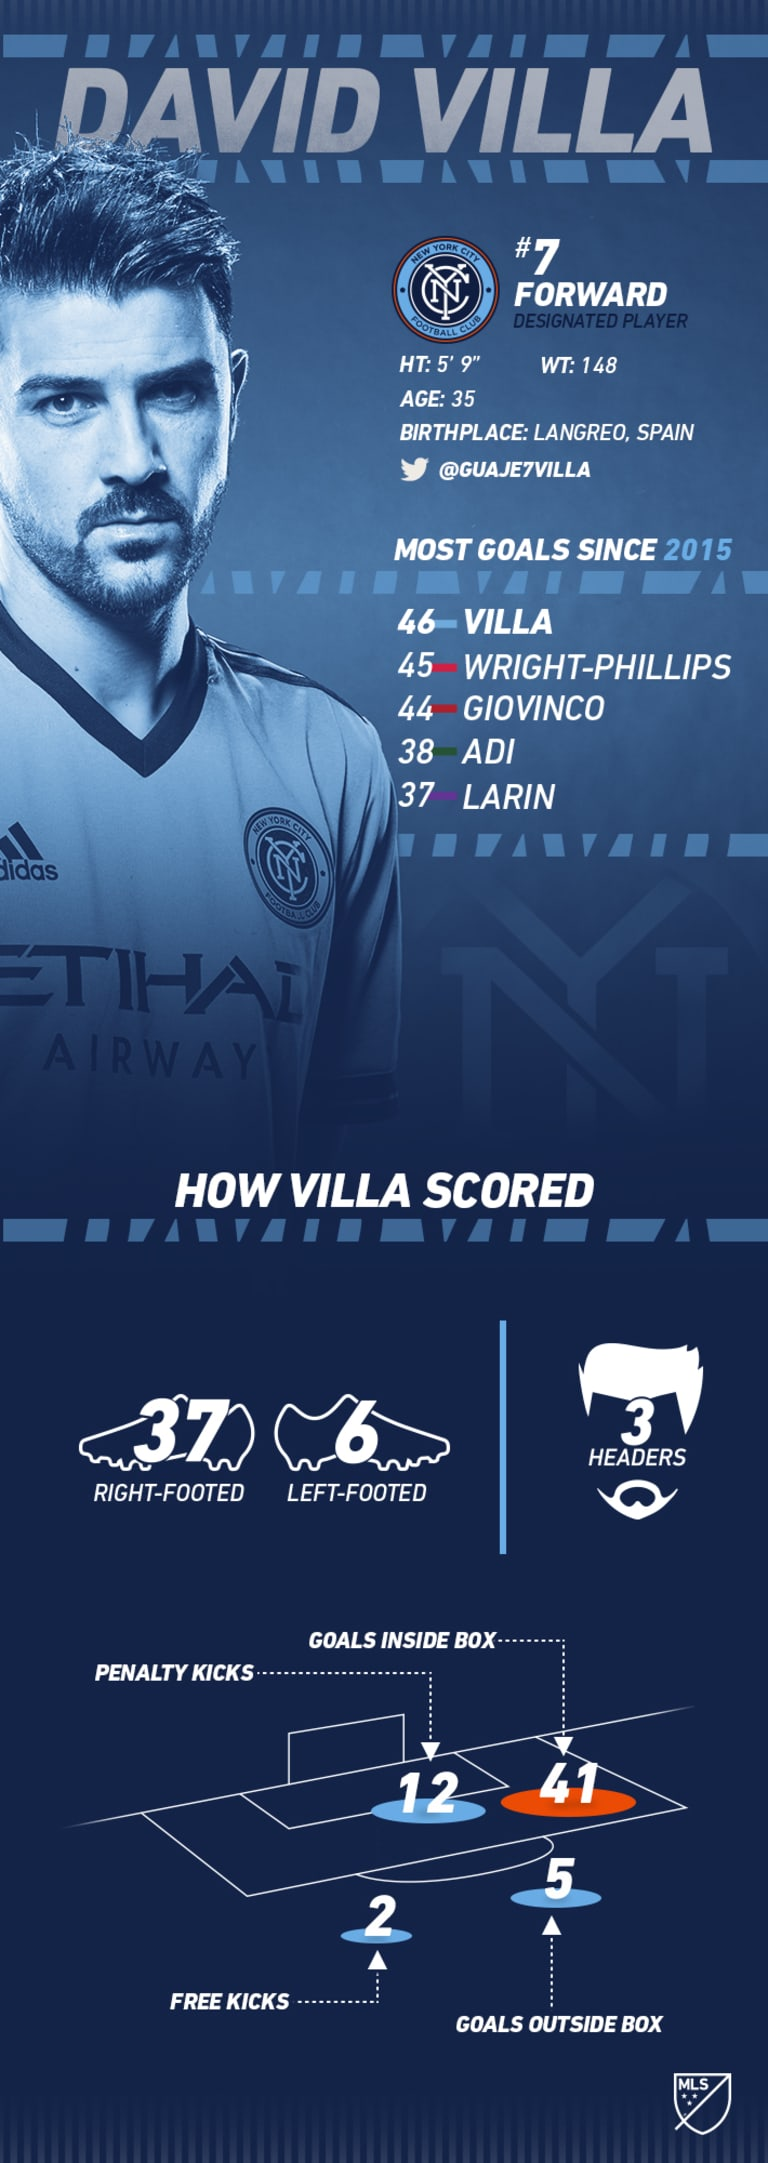 Just how dominant has NYCFC's David Villa been since his arrival in 2015? - https://league-mp7static.mlsdigital.net/images/2017-David-Villa-Infographic_0.jpg